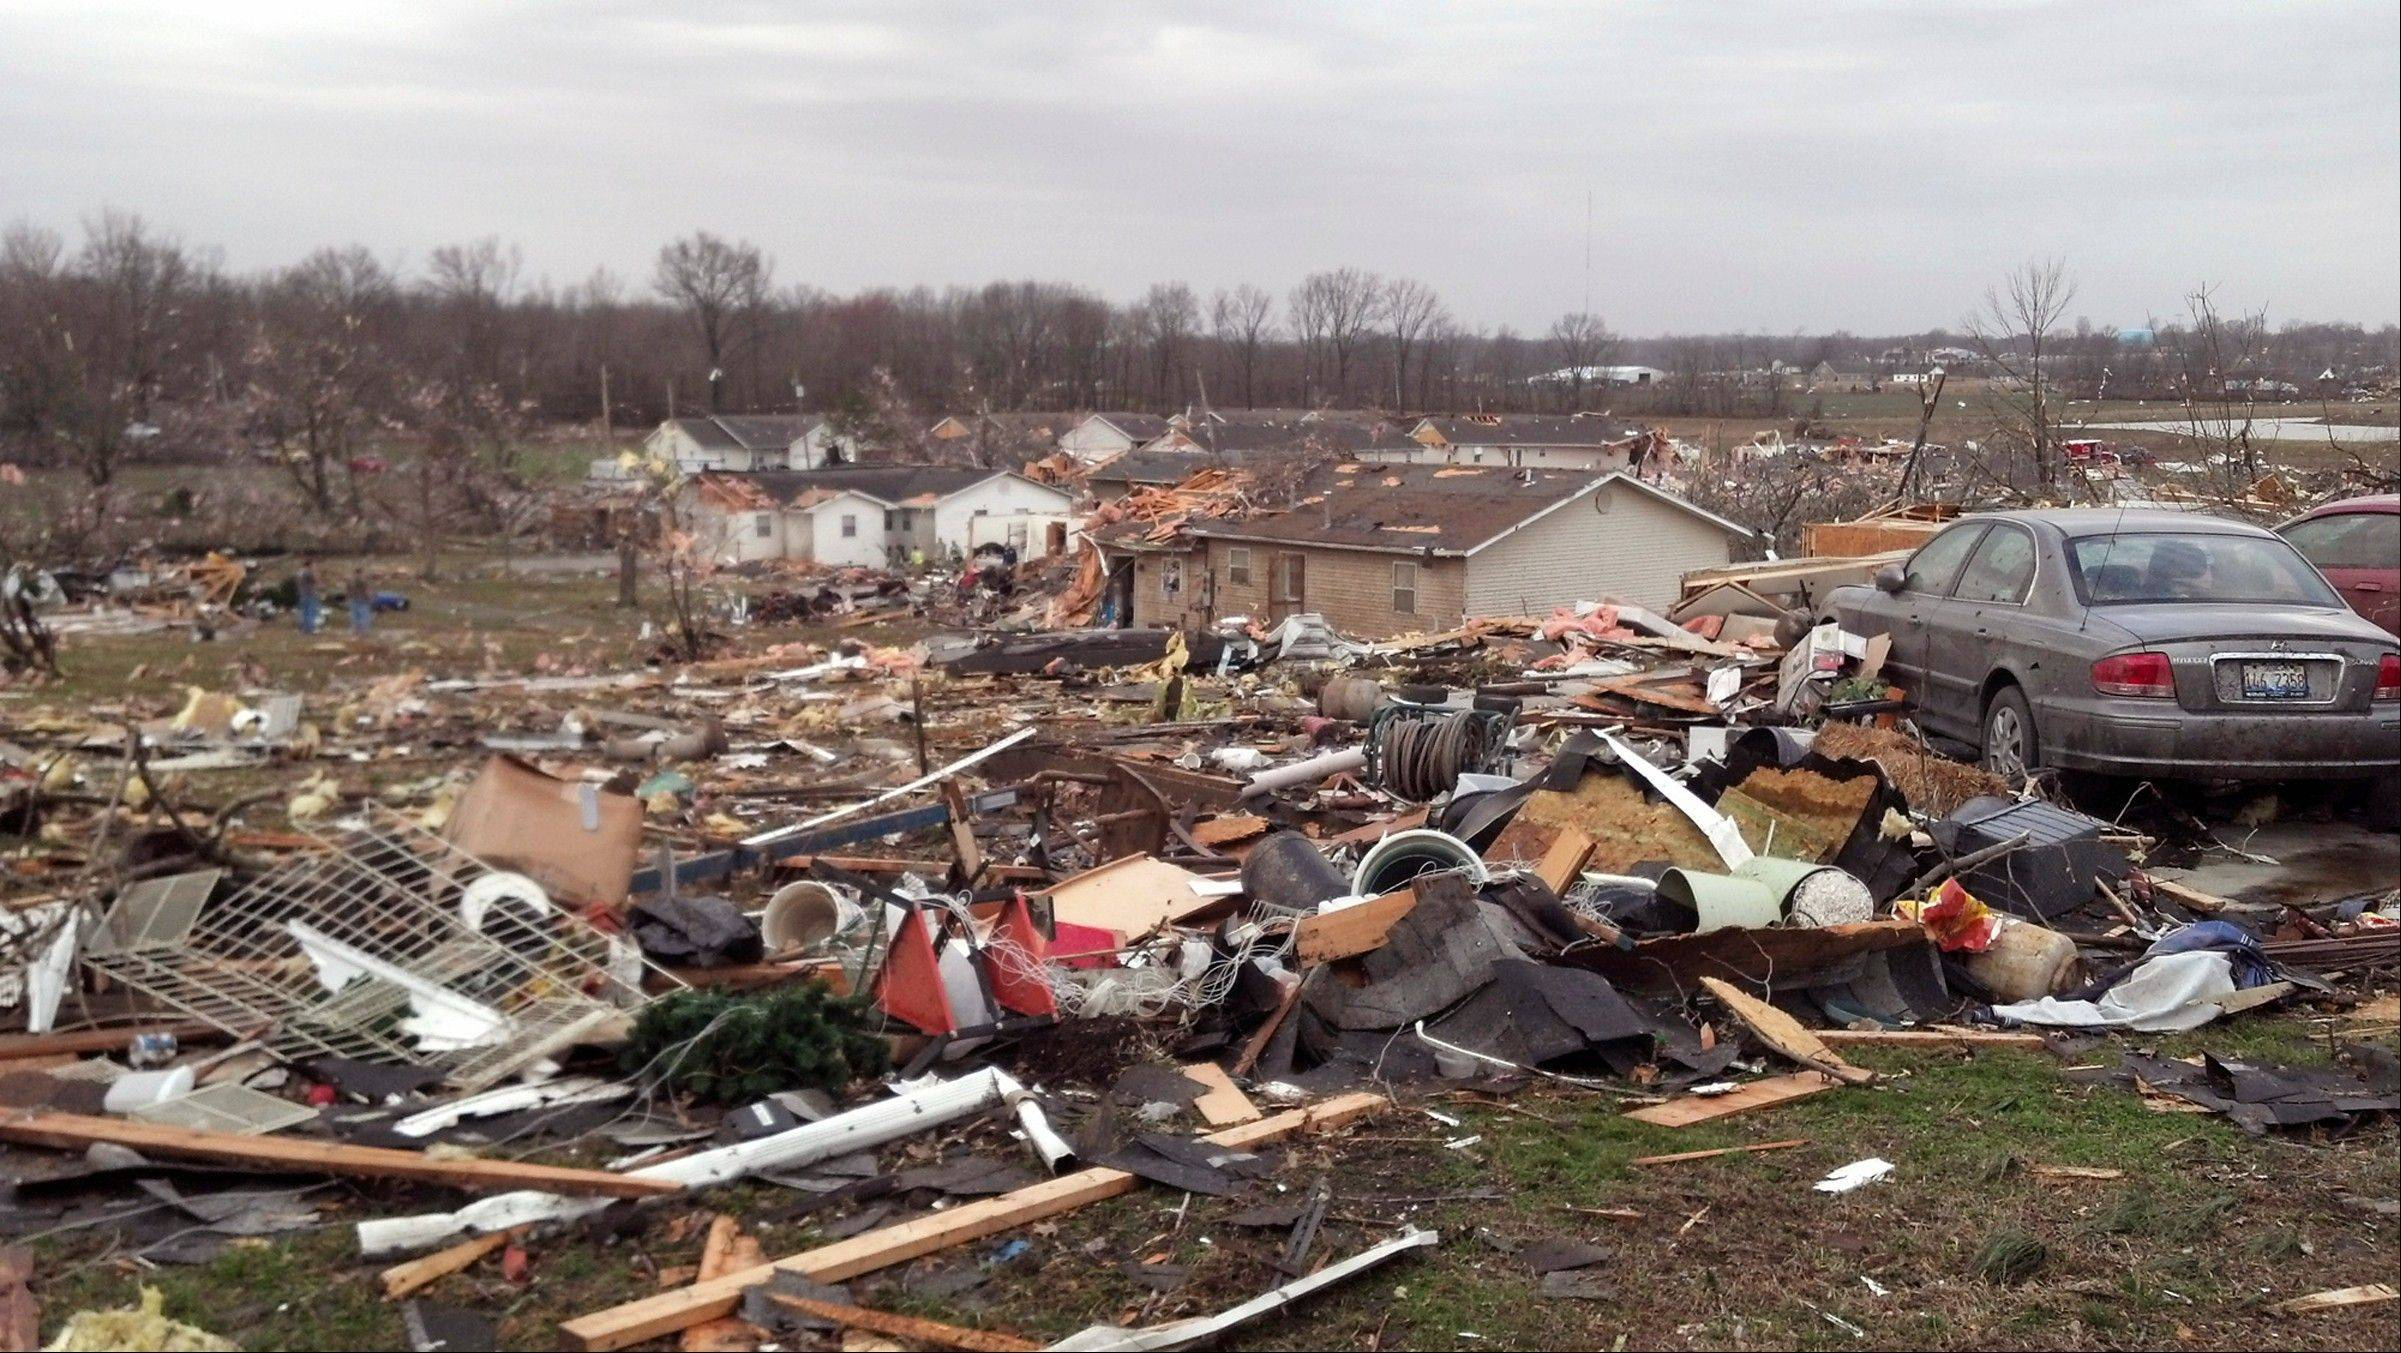 In this image made with a cellphone, a residential area is heavily damaged in Harrisburg, Ill., after a severe storm swept through the area early Wednesday morning, Feb. 29, 2012. A hospital administrator in Harrisburg says at least three people were killed in the storm that swept through the region.